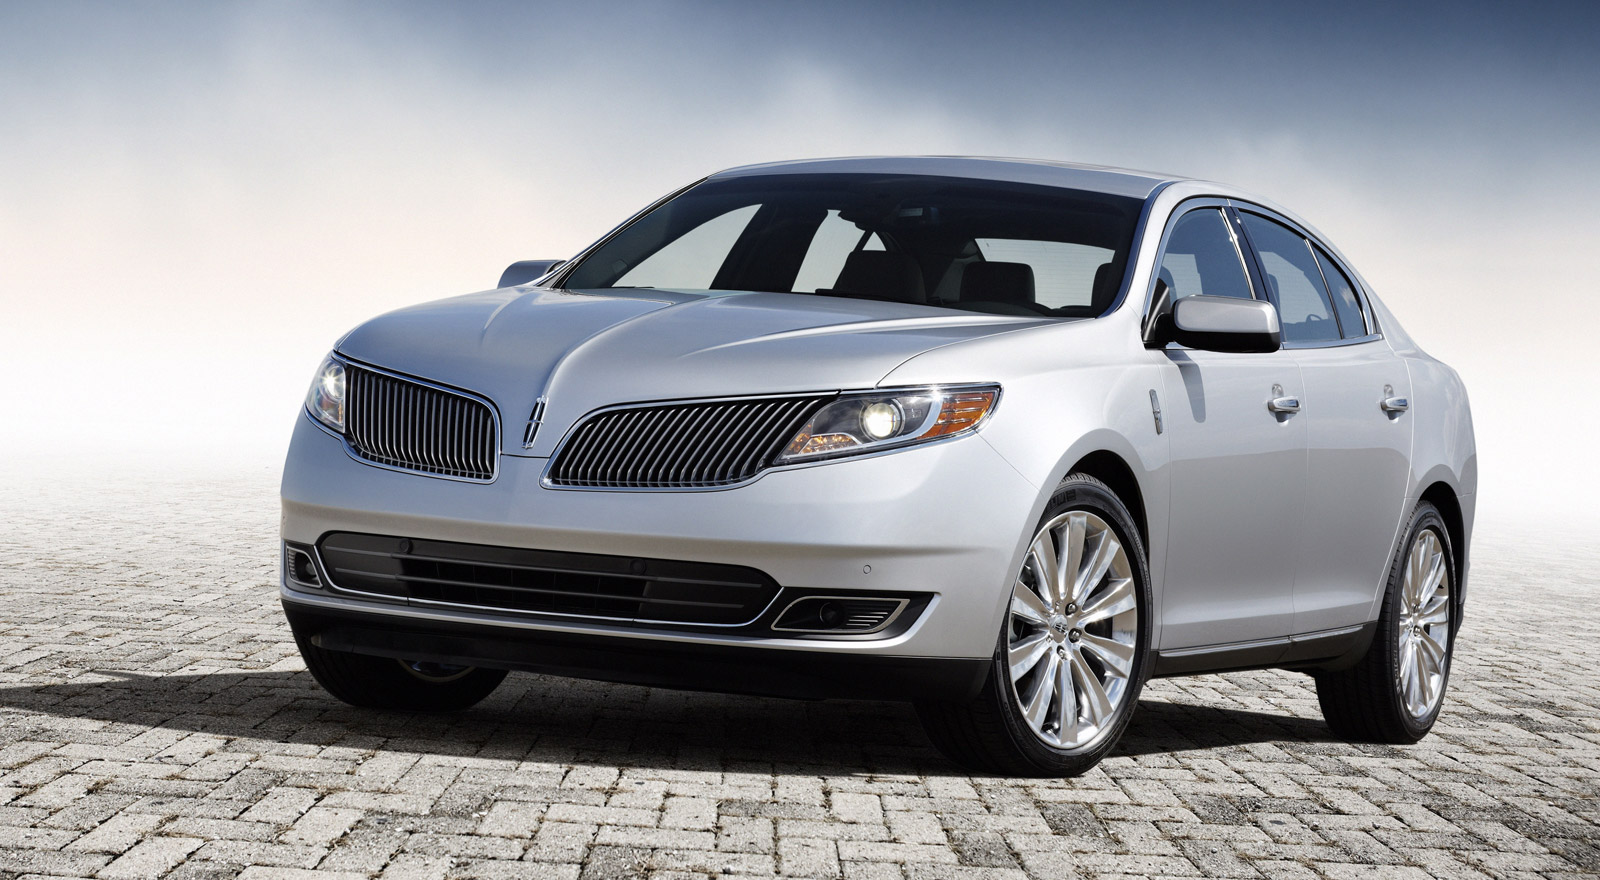 lincoln mks concept luxury market cars drive global wheel front powerful most 2028 lb hp ft sedan trends growth under